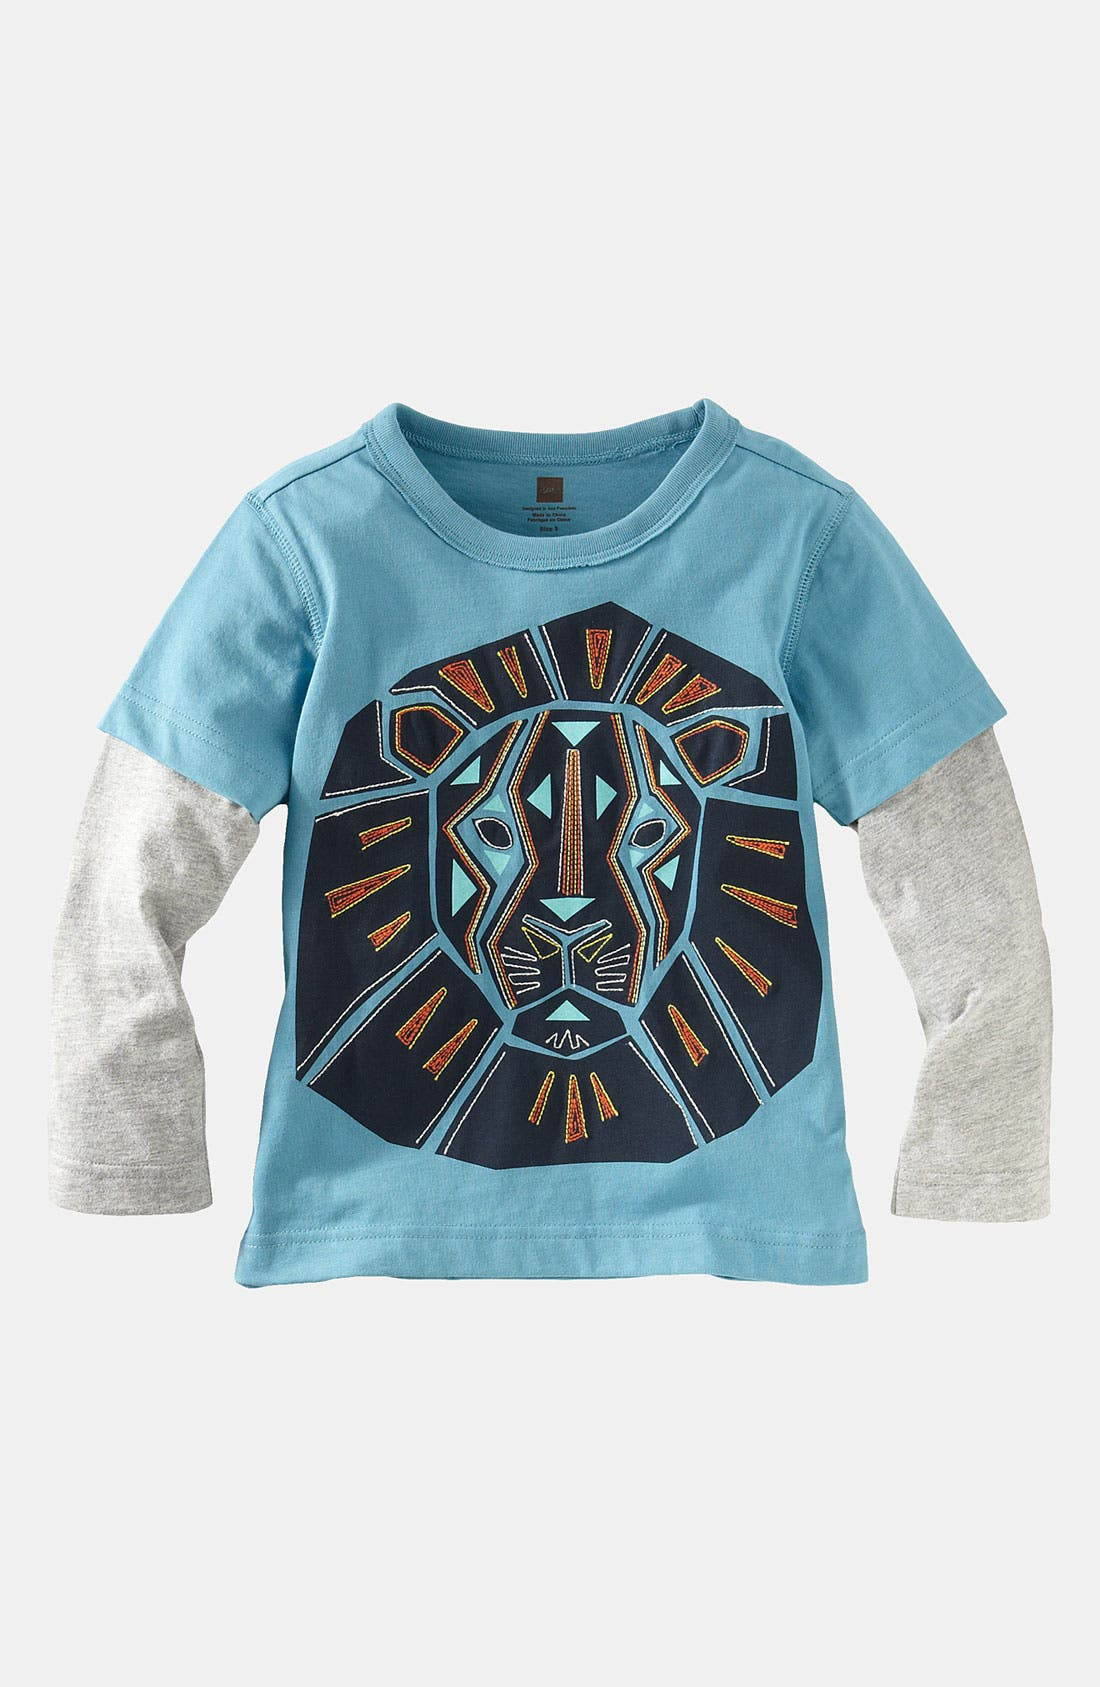 Main Image - Tea Collection Layered Sleeve T-Shirt (Toddler)